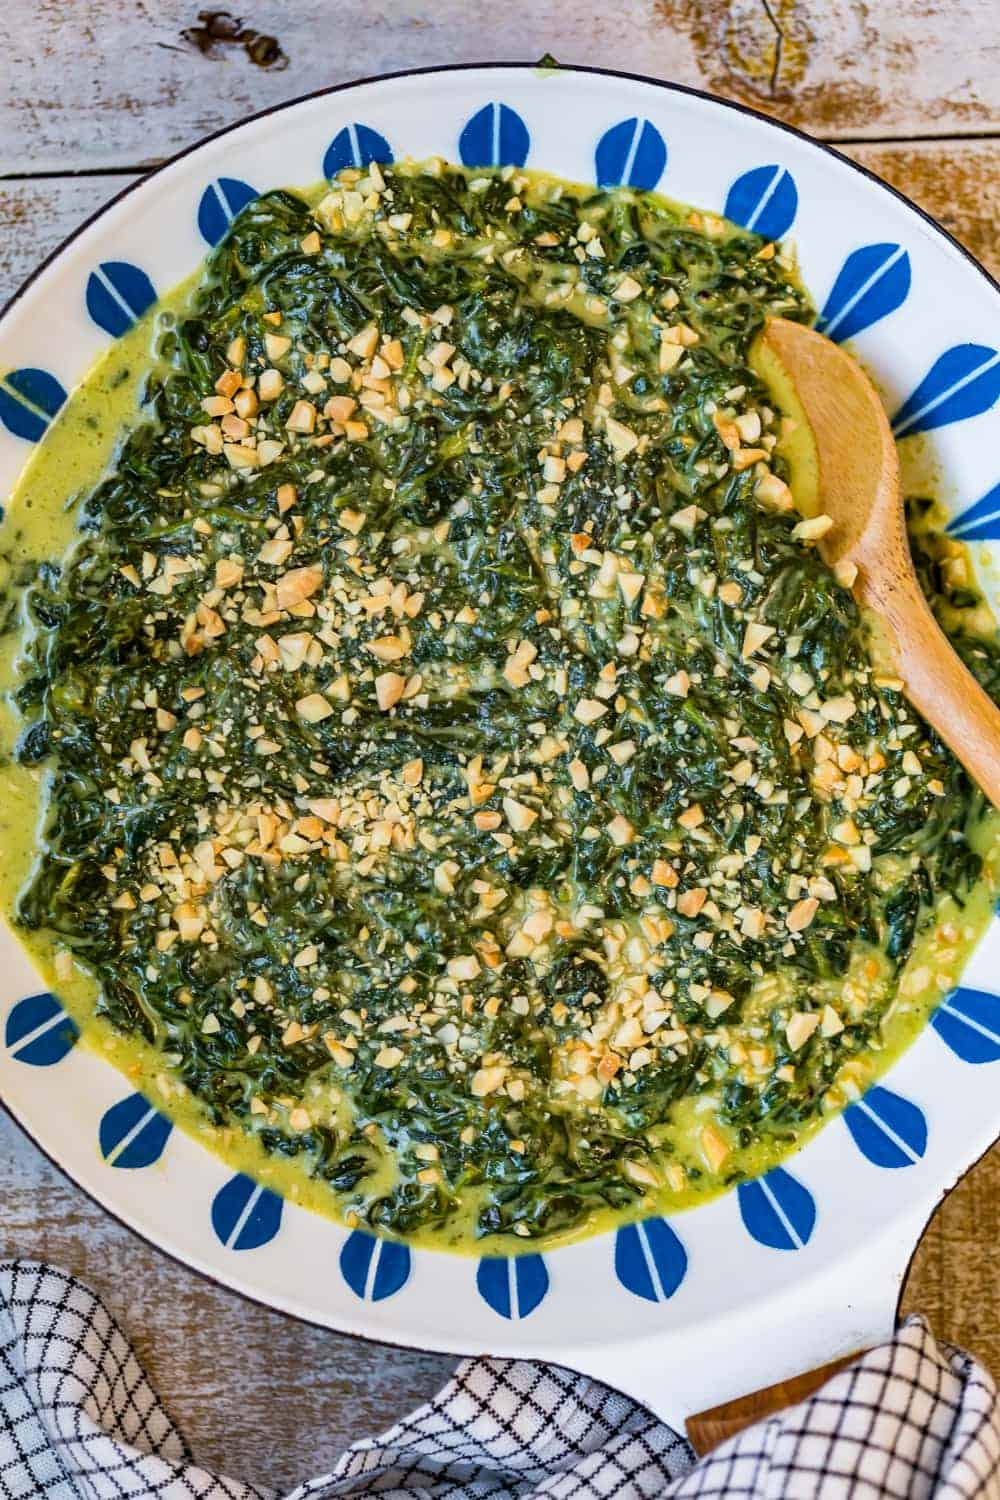 Creamed spinach served in a blue and white bowl